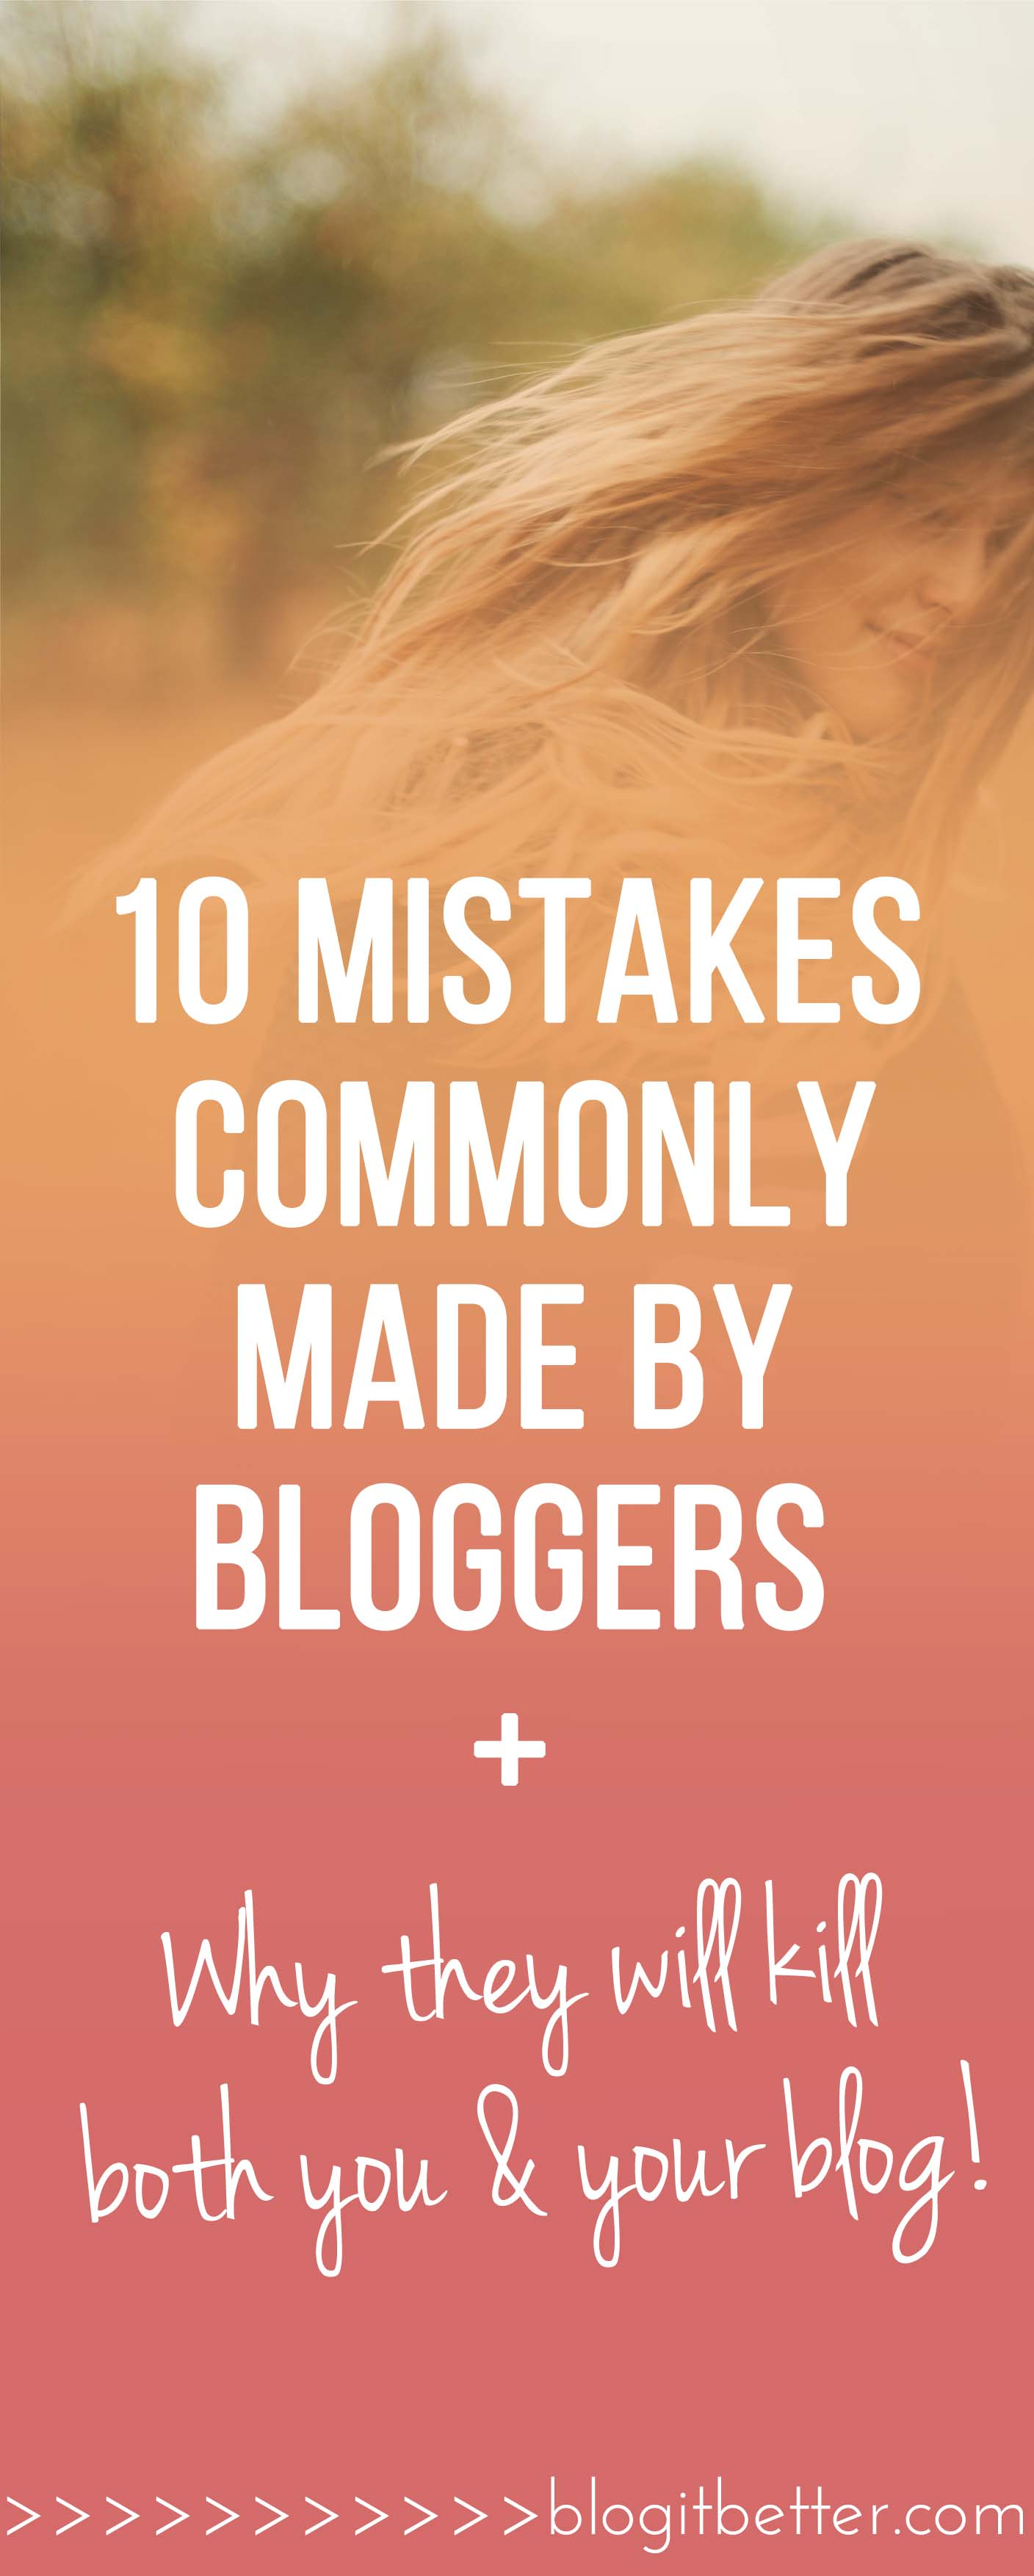 10 Common Mistakes Made by Bloggers & Why They Will Kill Your Blog and Wear You Out! Blog it Better!